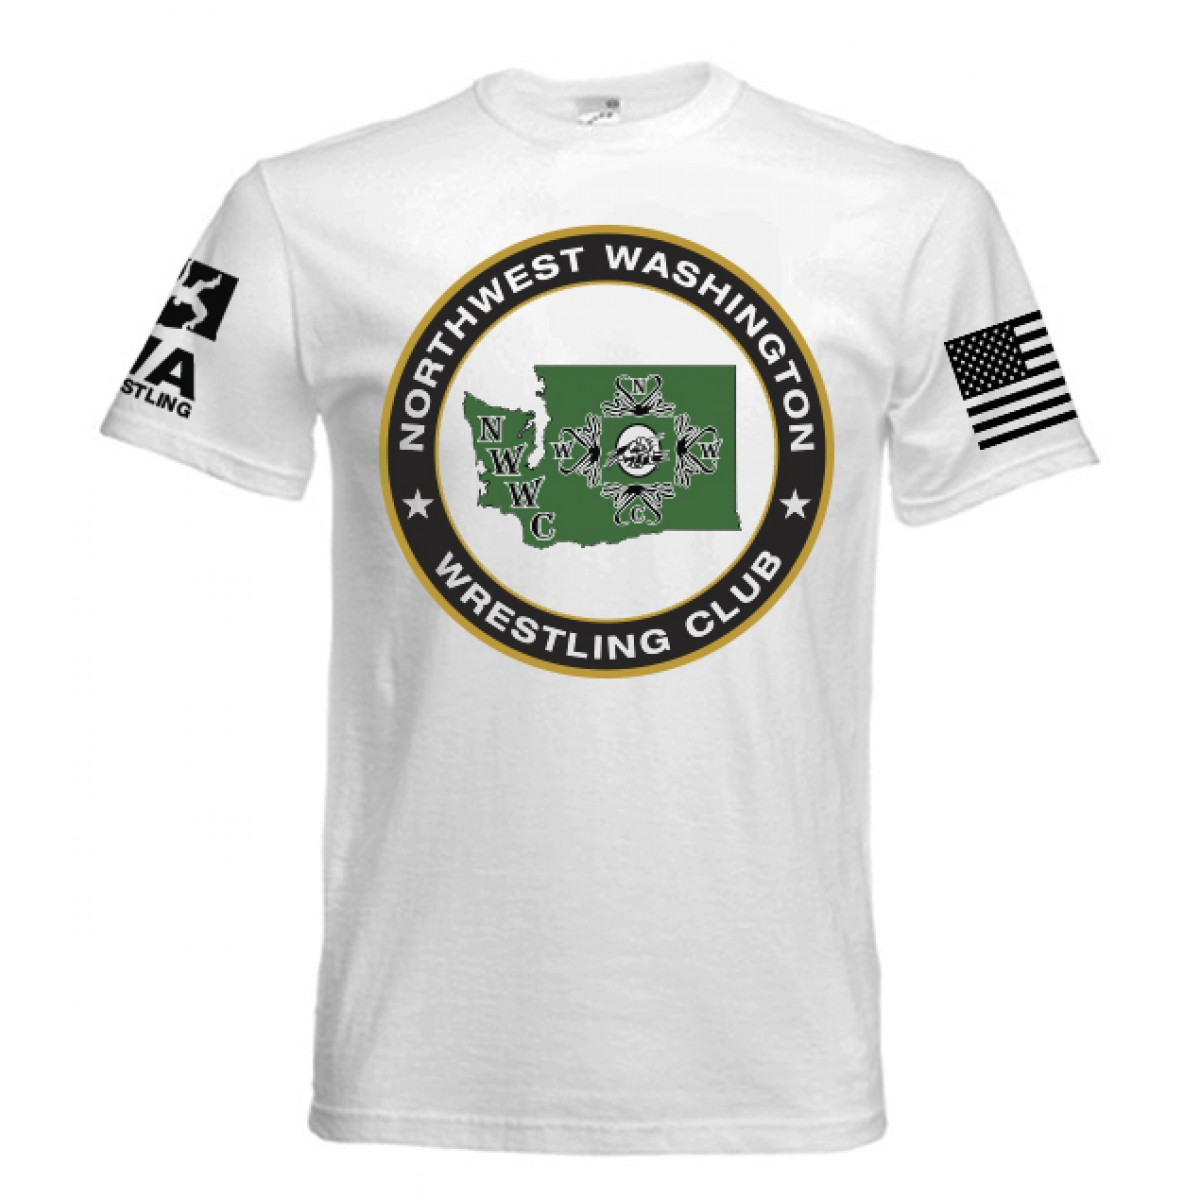 NWWC White T-shirt Green Logo-White-S